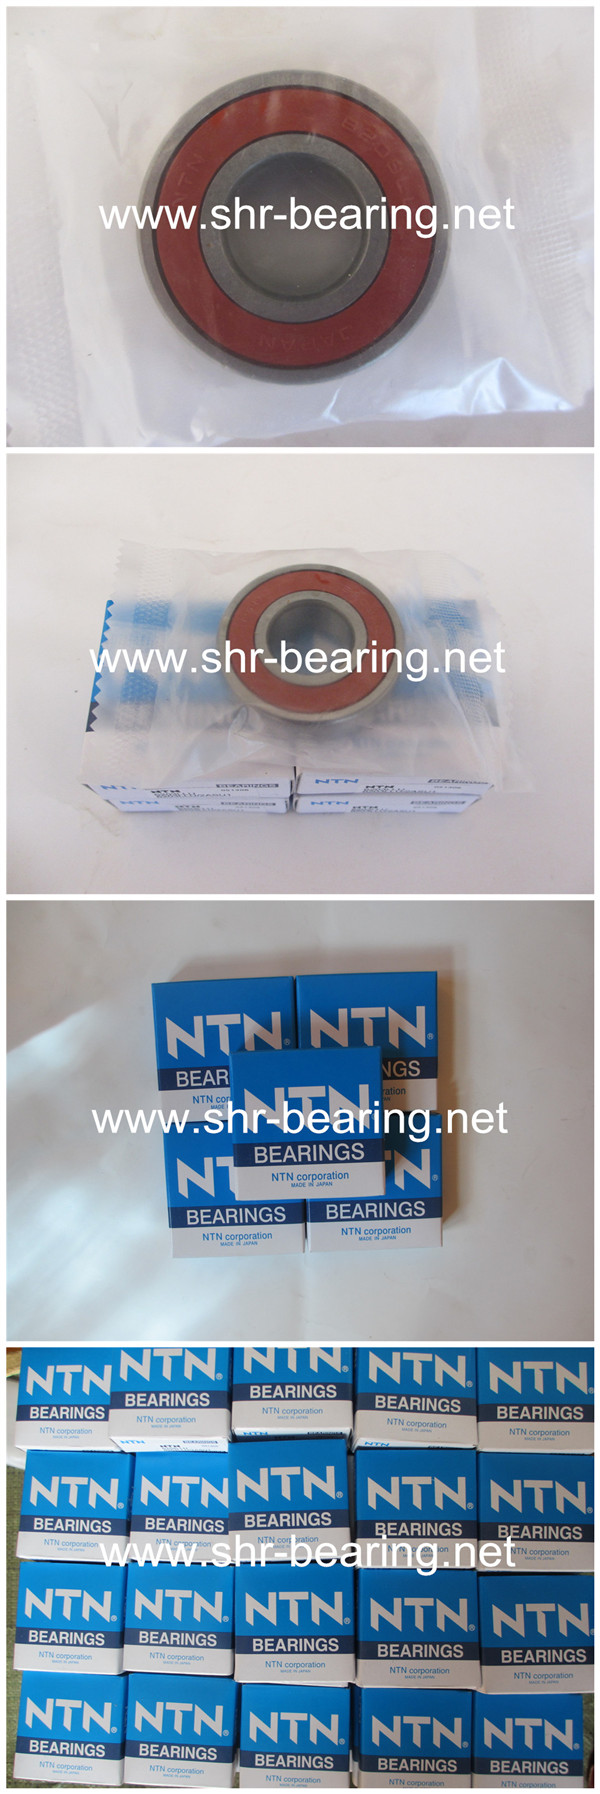 Ntn Ball Bearing 6203llu 6203zz 6203 2rs Ntnyoyo Bearing